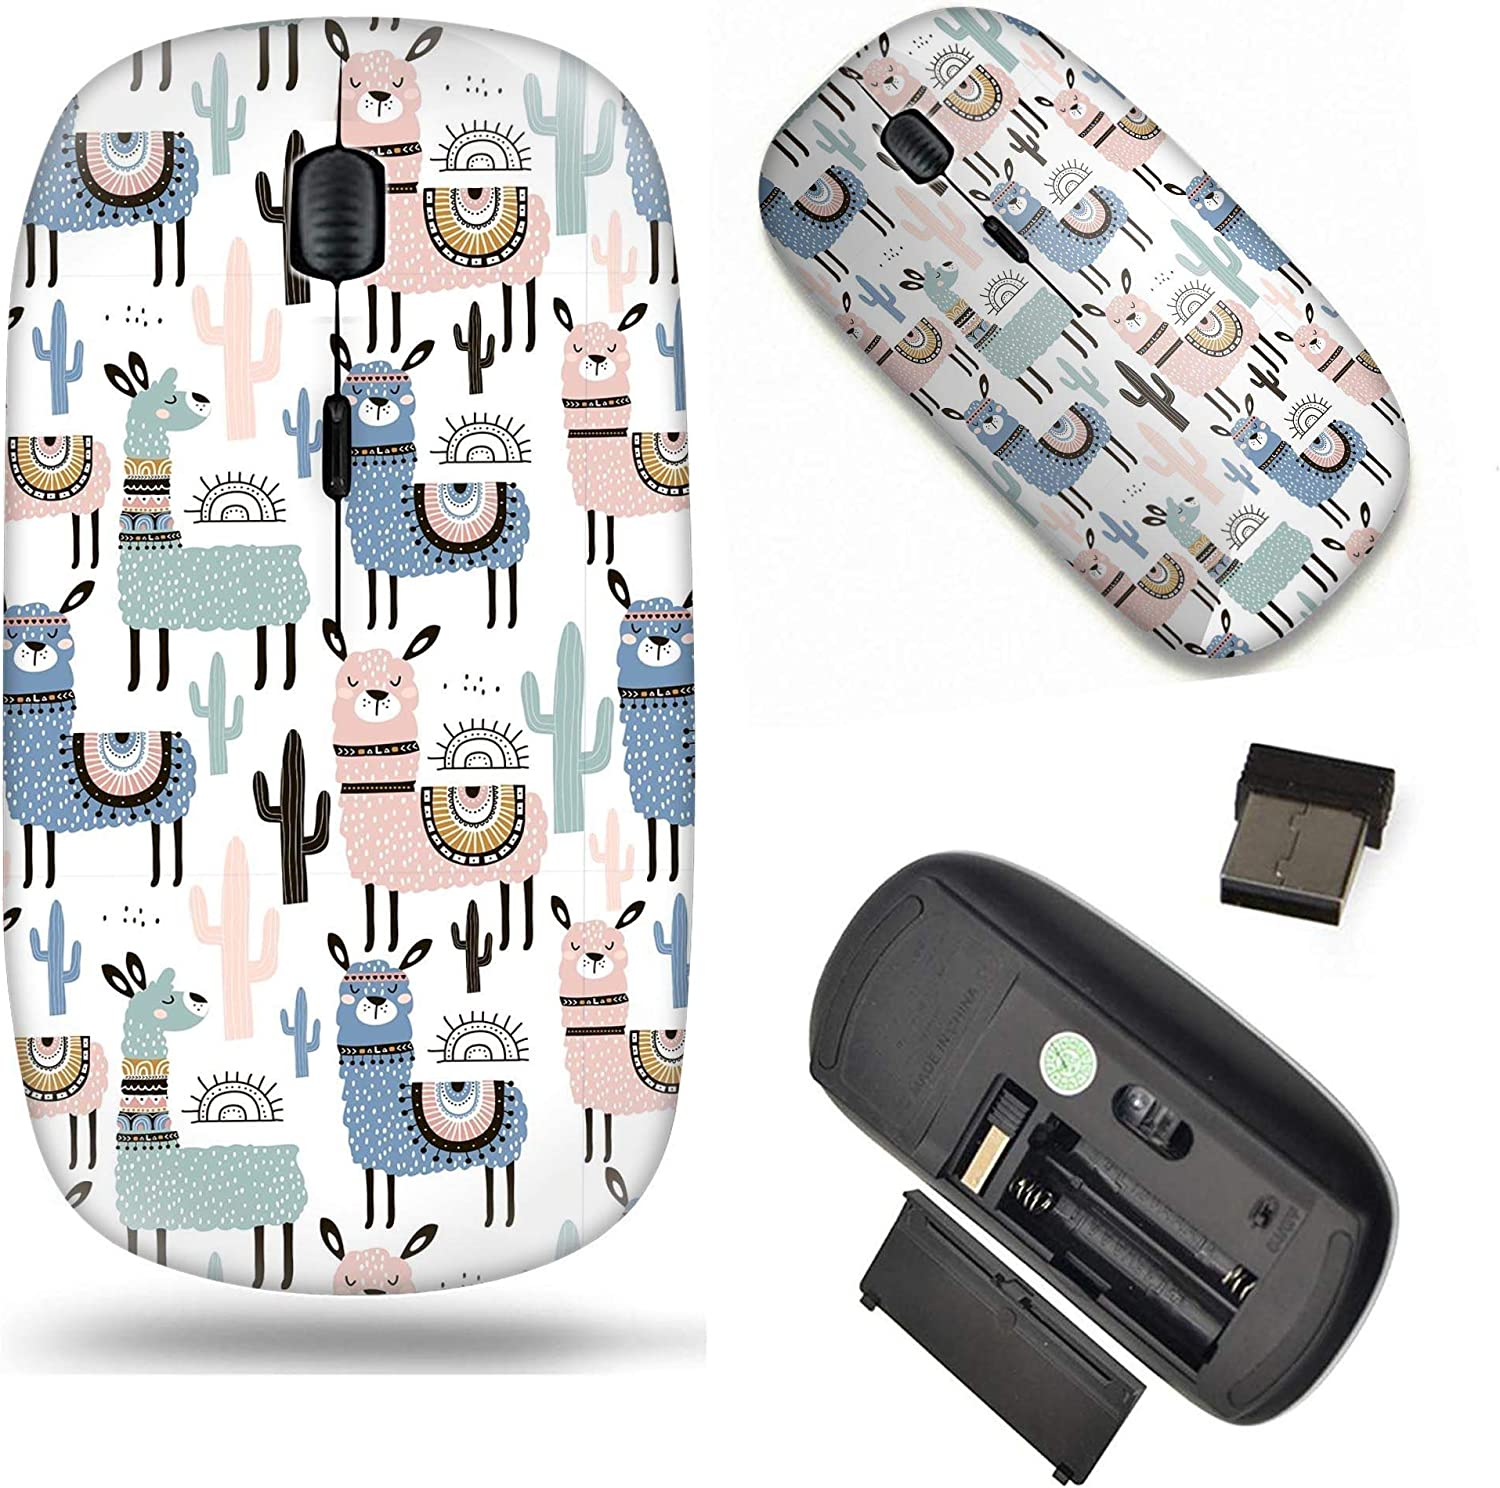 Unique Pattern Optical Mice Mobile Wireless Mouse 2.4G Portable for Notebook, PC, Laptop, Computer - Cute Llama and Cactus Pattern